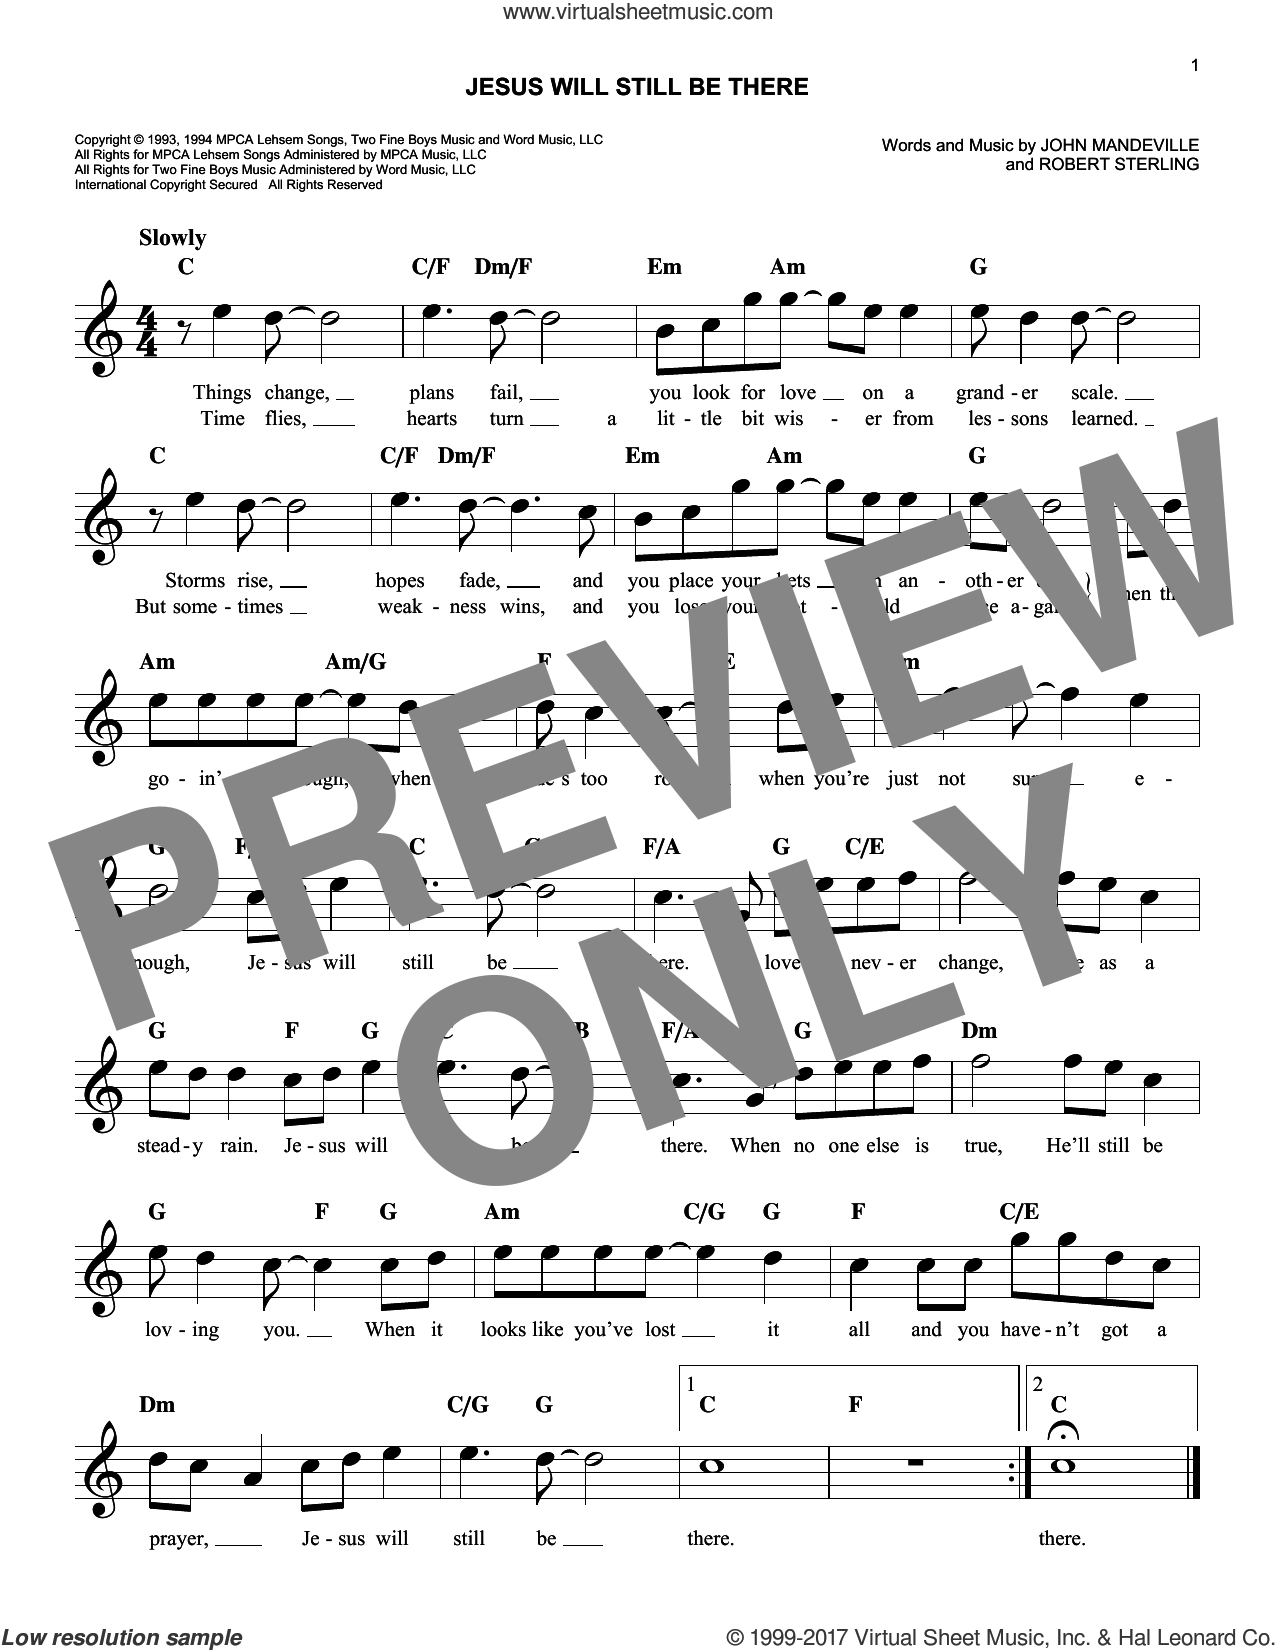 Jesus Will Still Be There sheet music for voice and other instruments (fake book) by Point Of Grace, John Mandeville and Robert Sterling, intermediate skill level